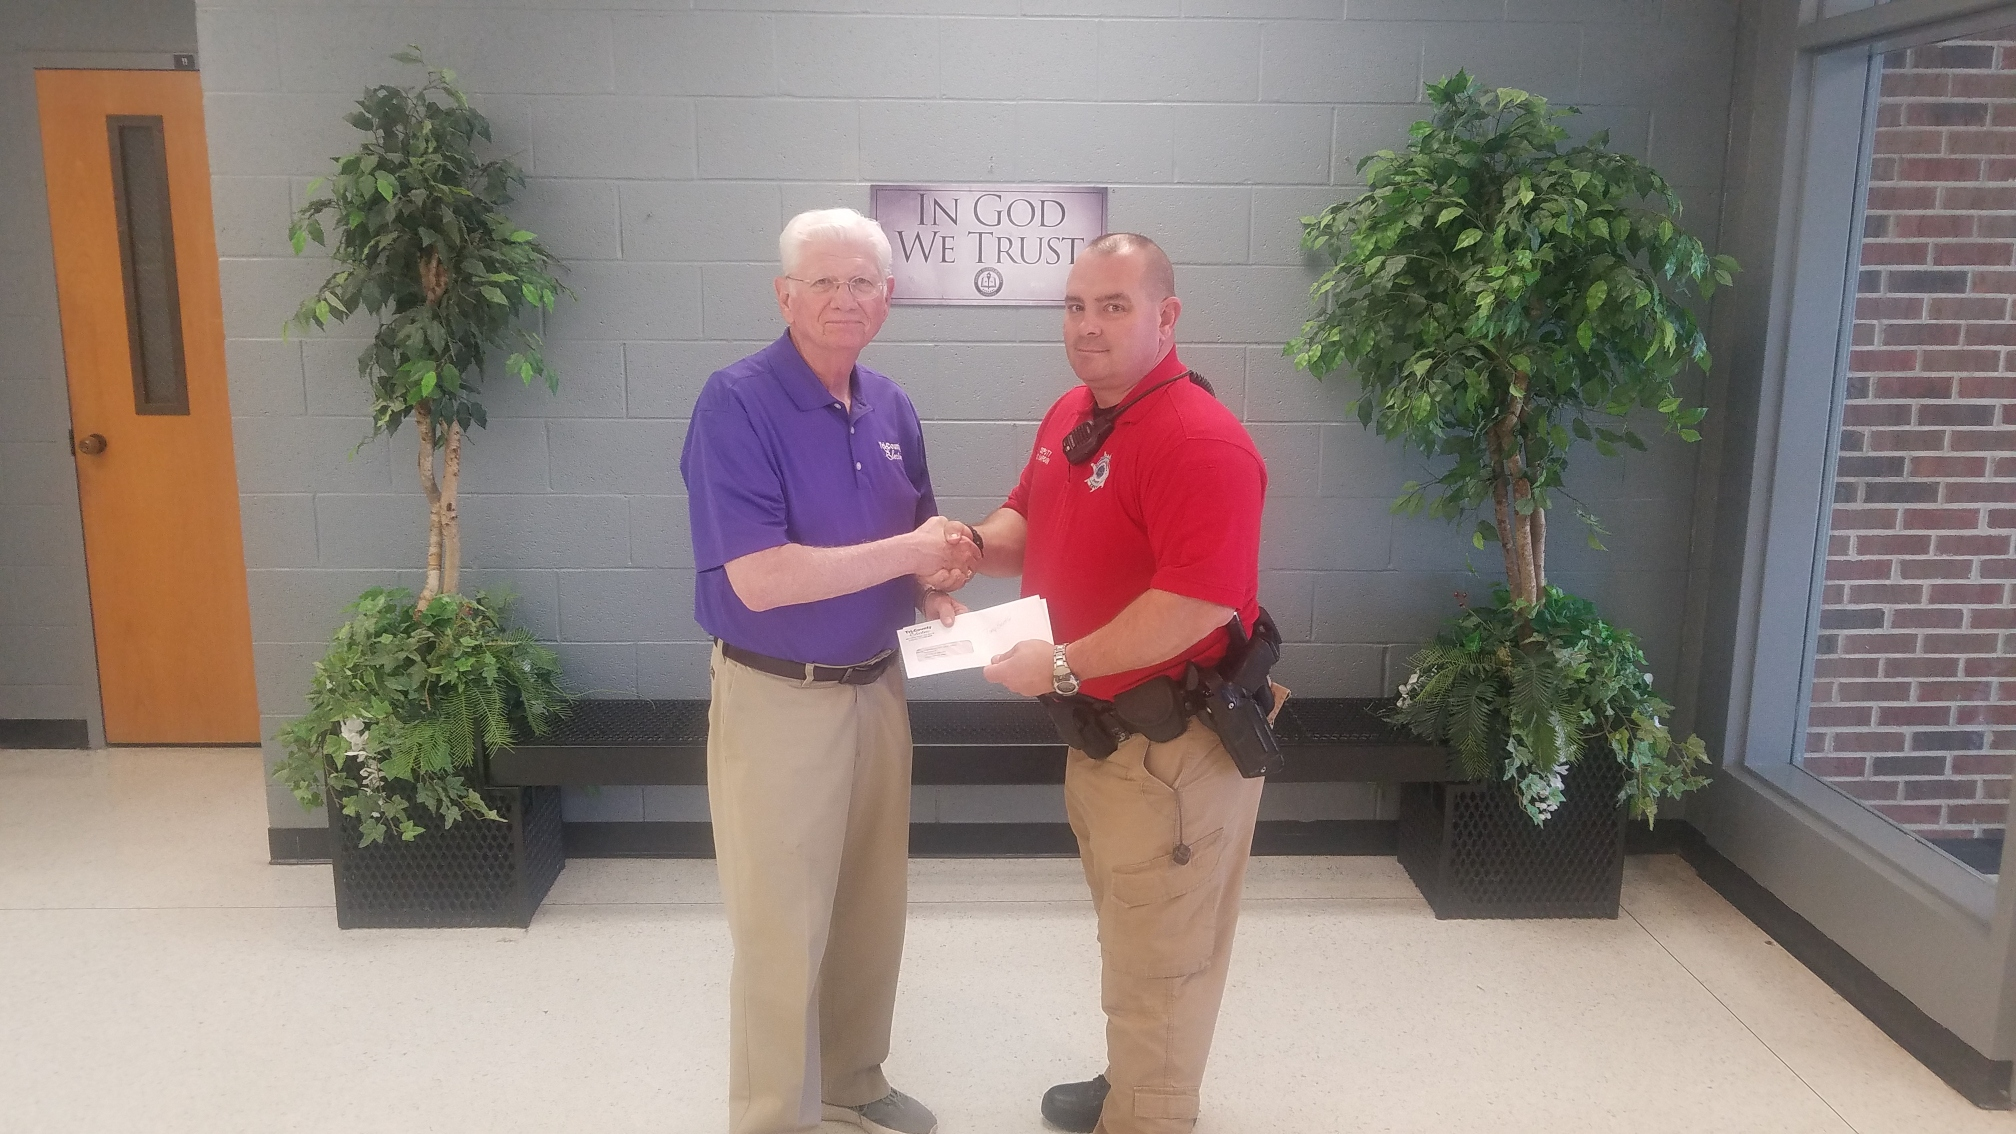 Deputy Hardin Accepts ...   a donation for the C.H.A.M.P. program from Tri-County presented by board member, Mr. Tony Bentle.  (03/22)